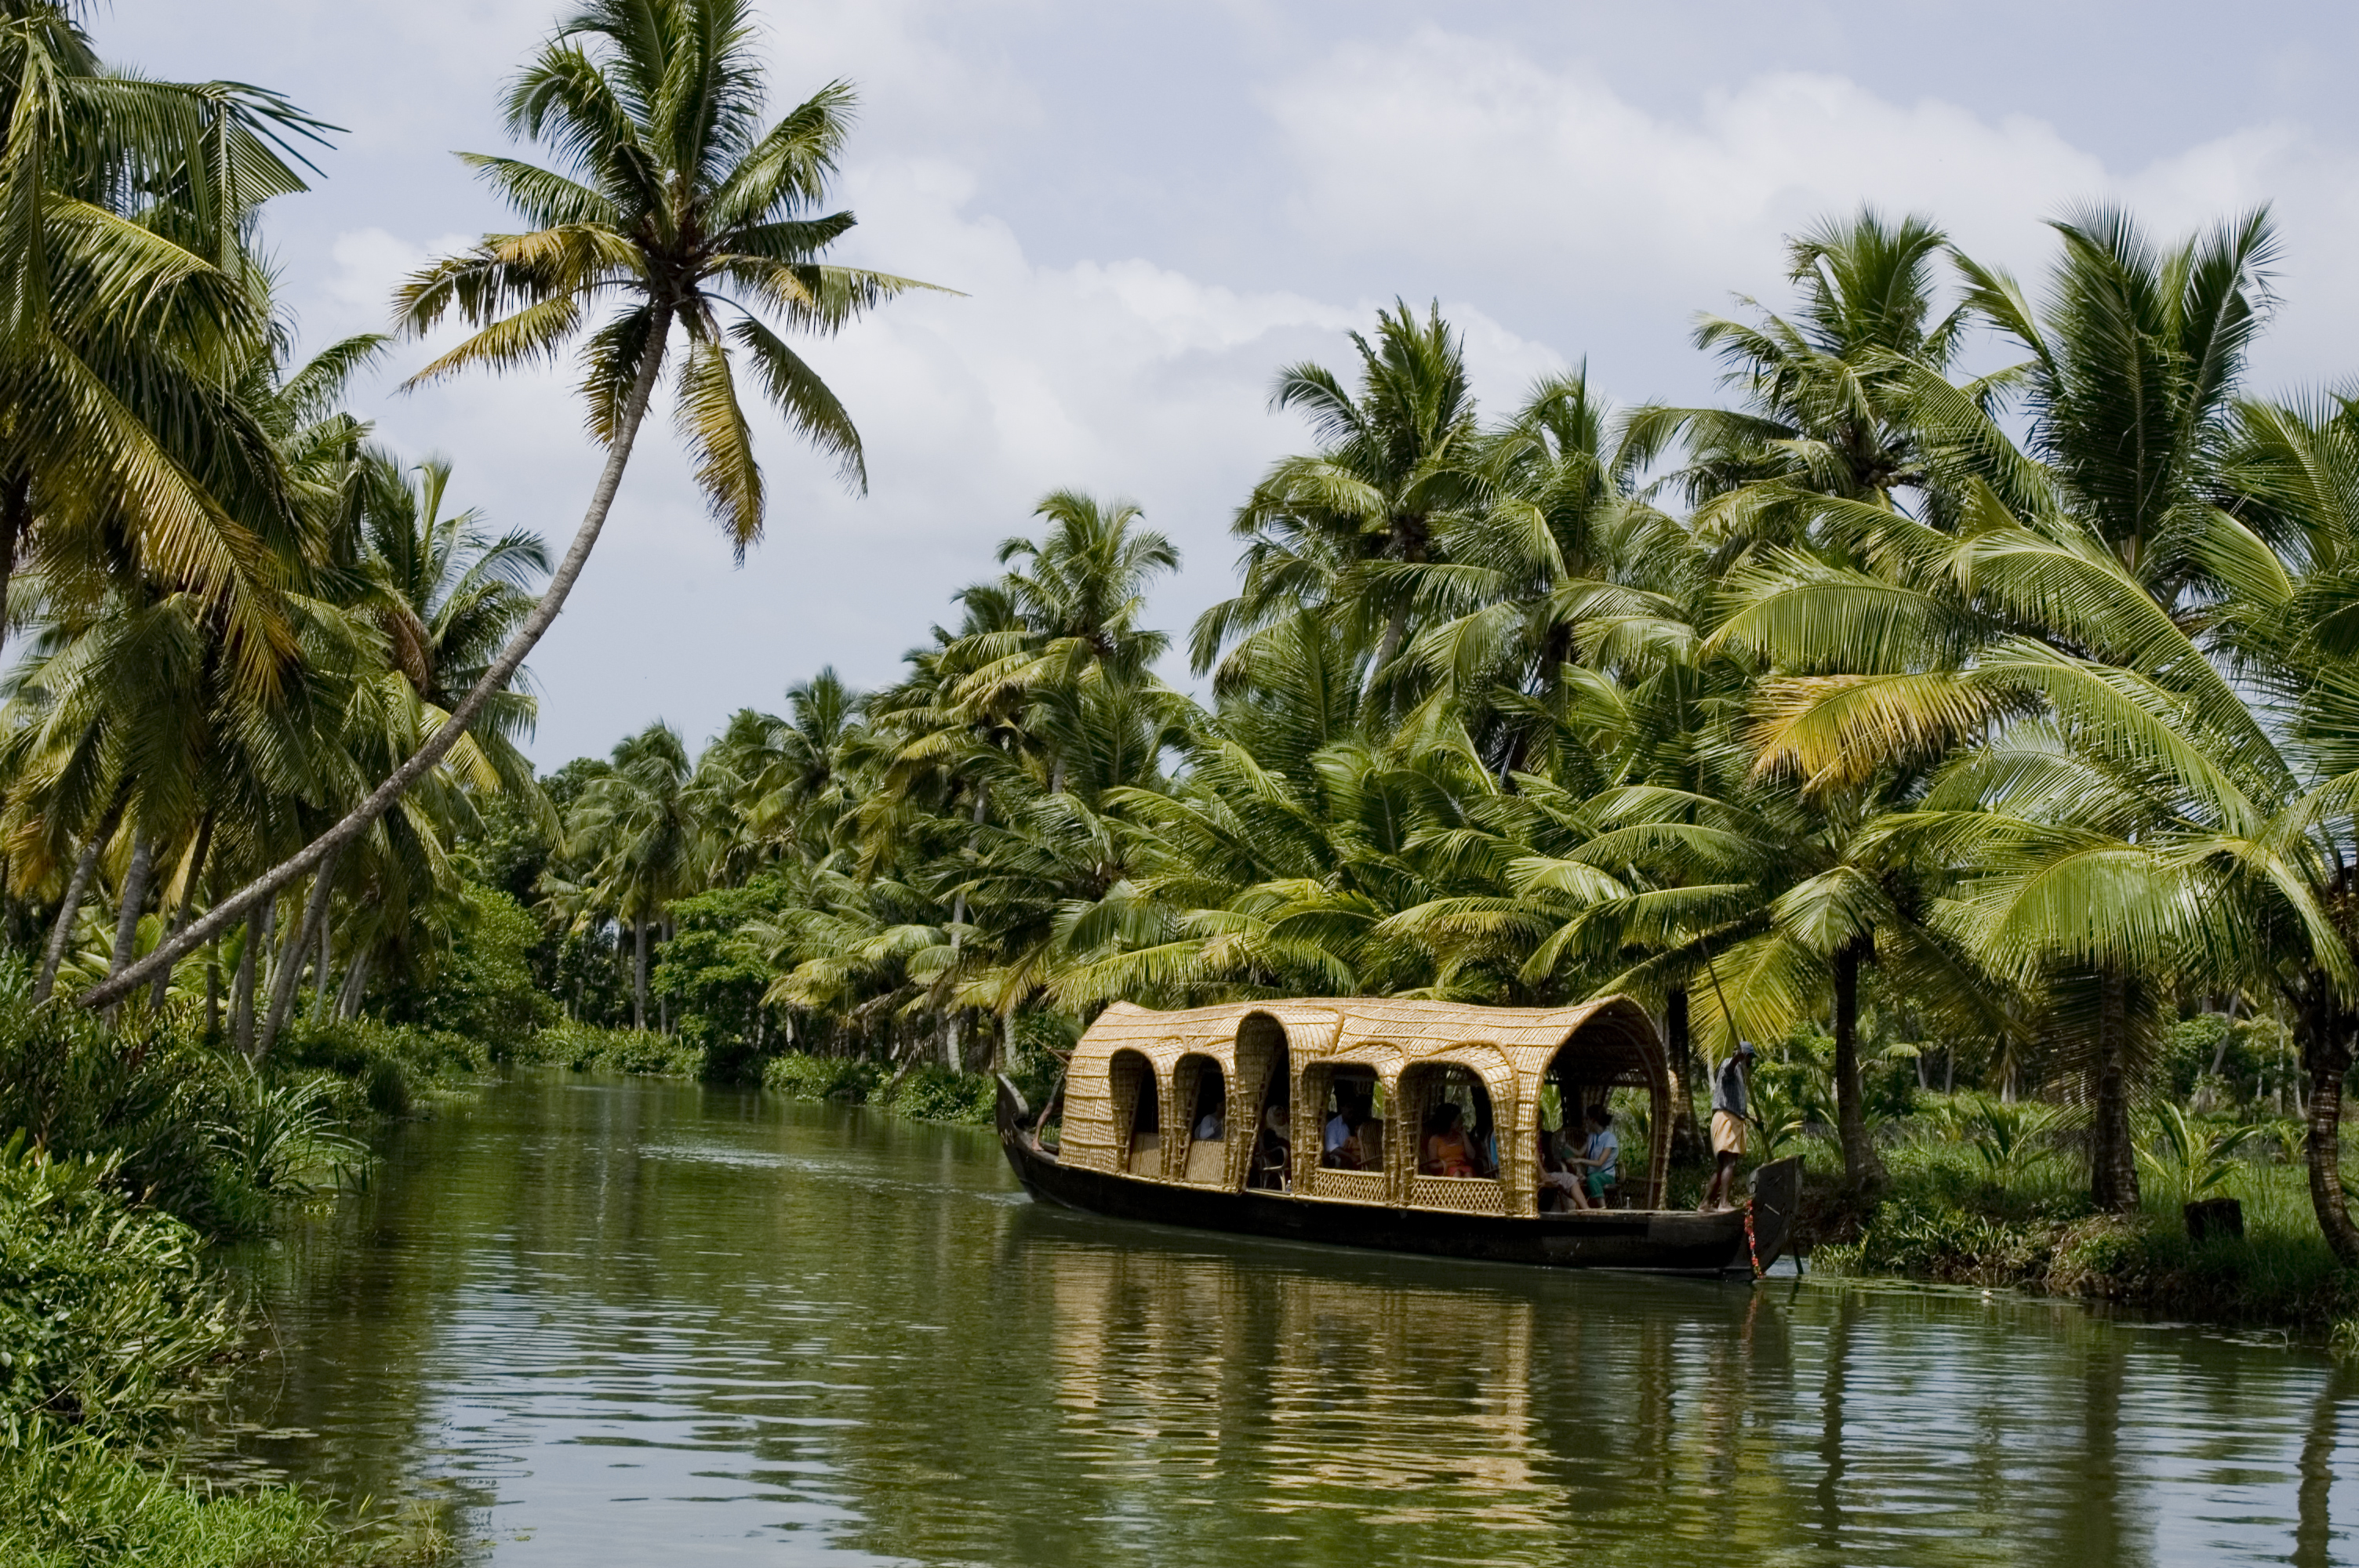 Download High Resolution Pictures Nothe Kerala Kerala Tourism Kerala Tourism